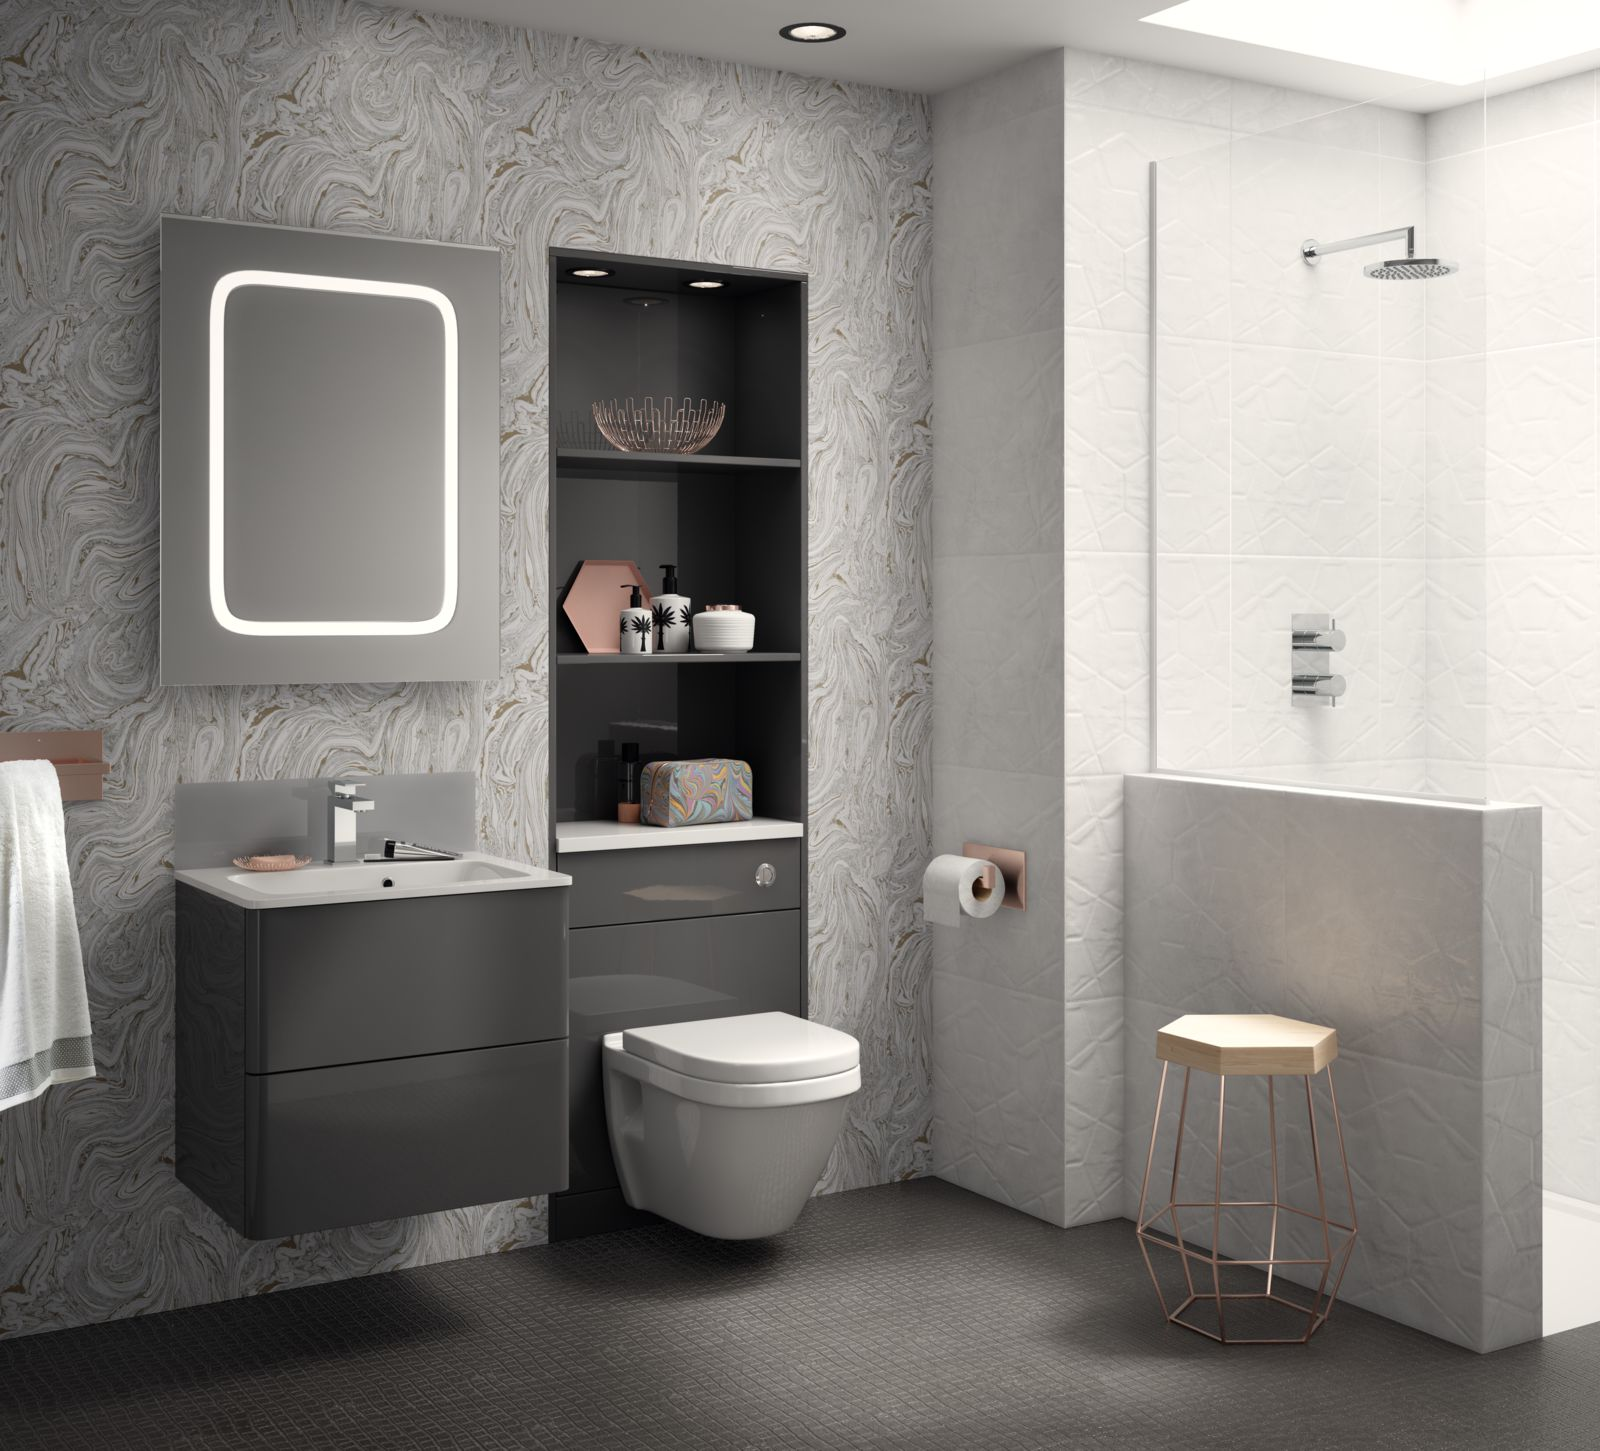 Fiora Has An Encapsulating Gloss Finish Which Creates The Perfect Subtle  Yet Luxurious Tone For A Modern Bathroom.